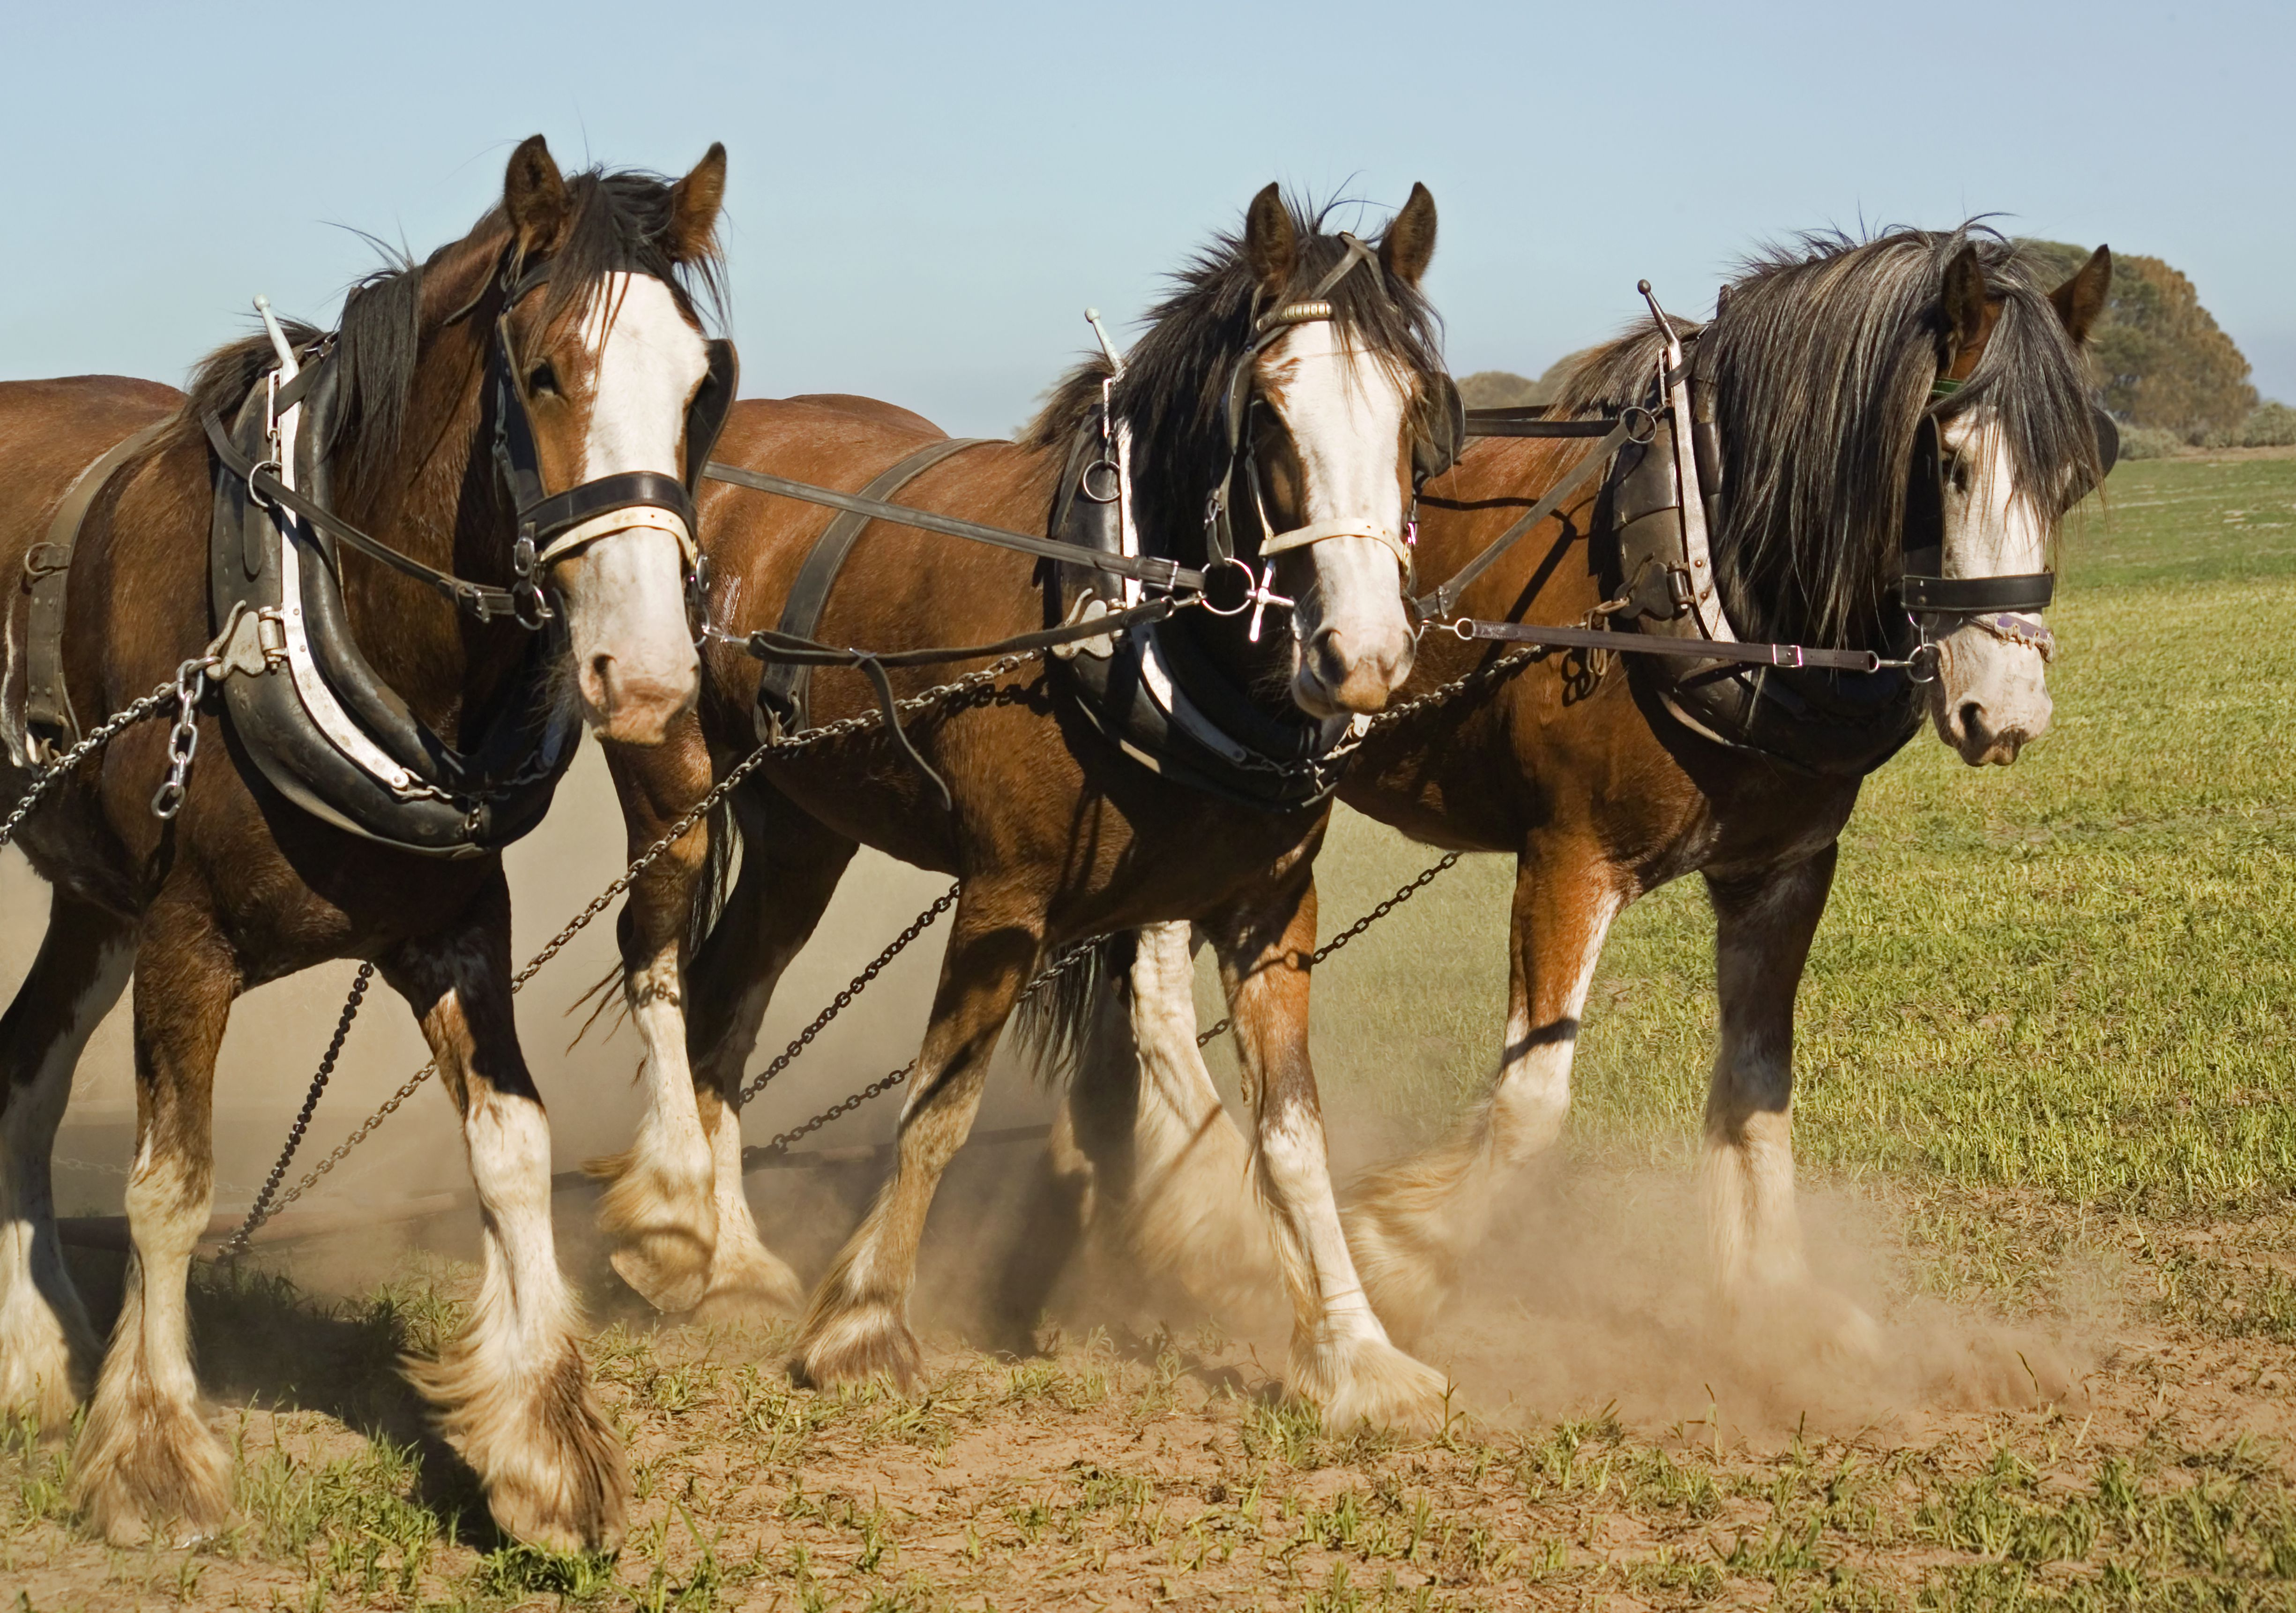 Clydesdale horse team walking in a field